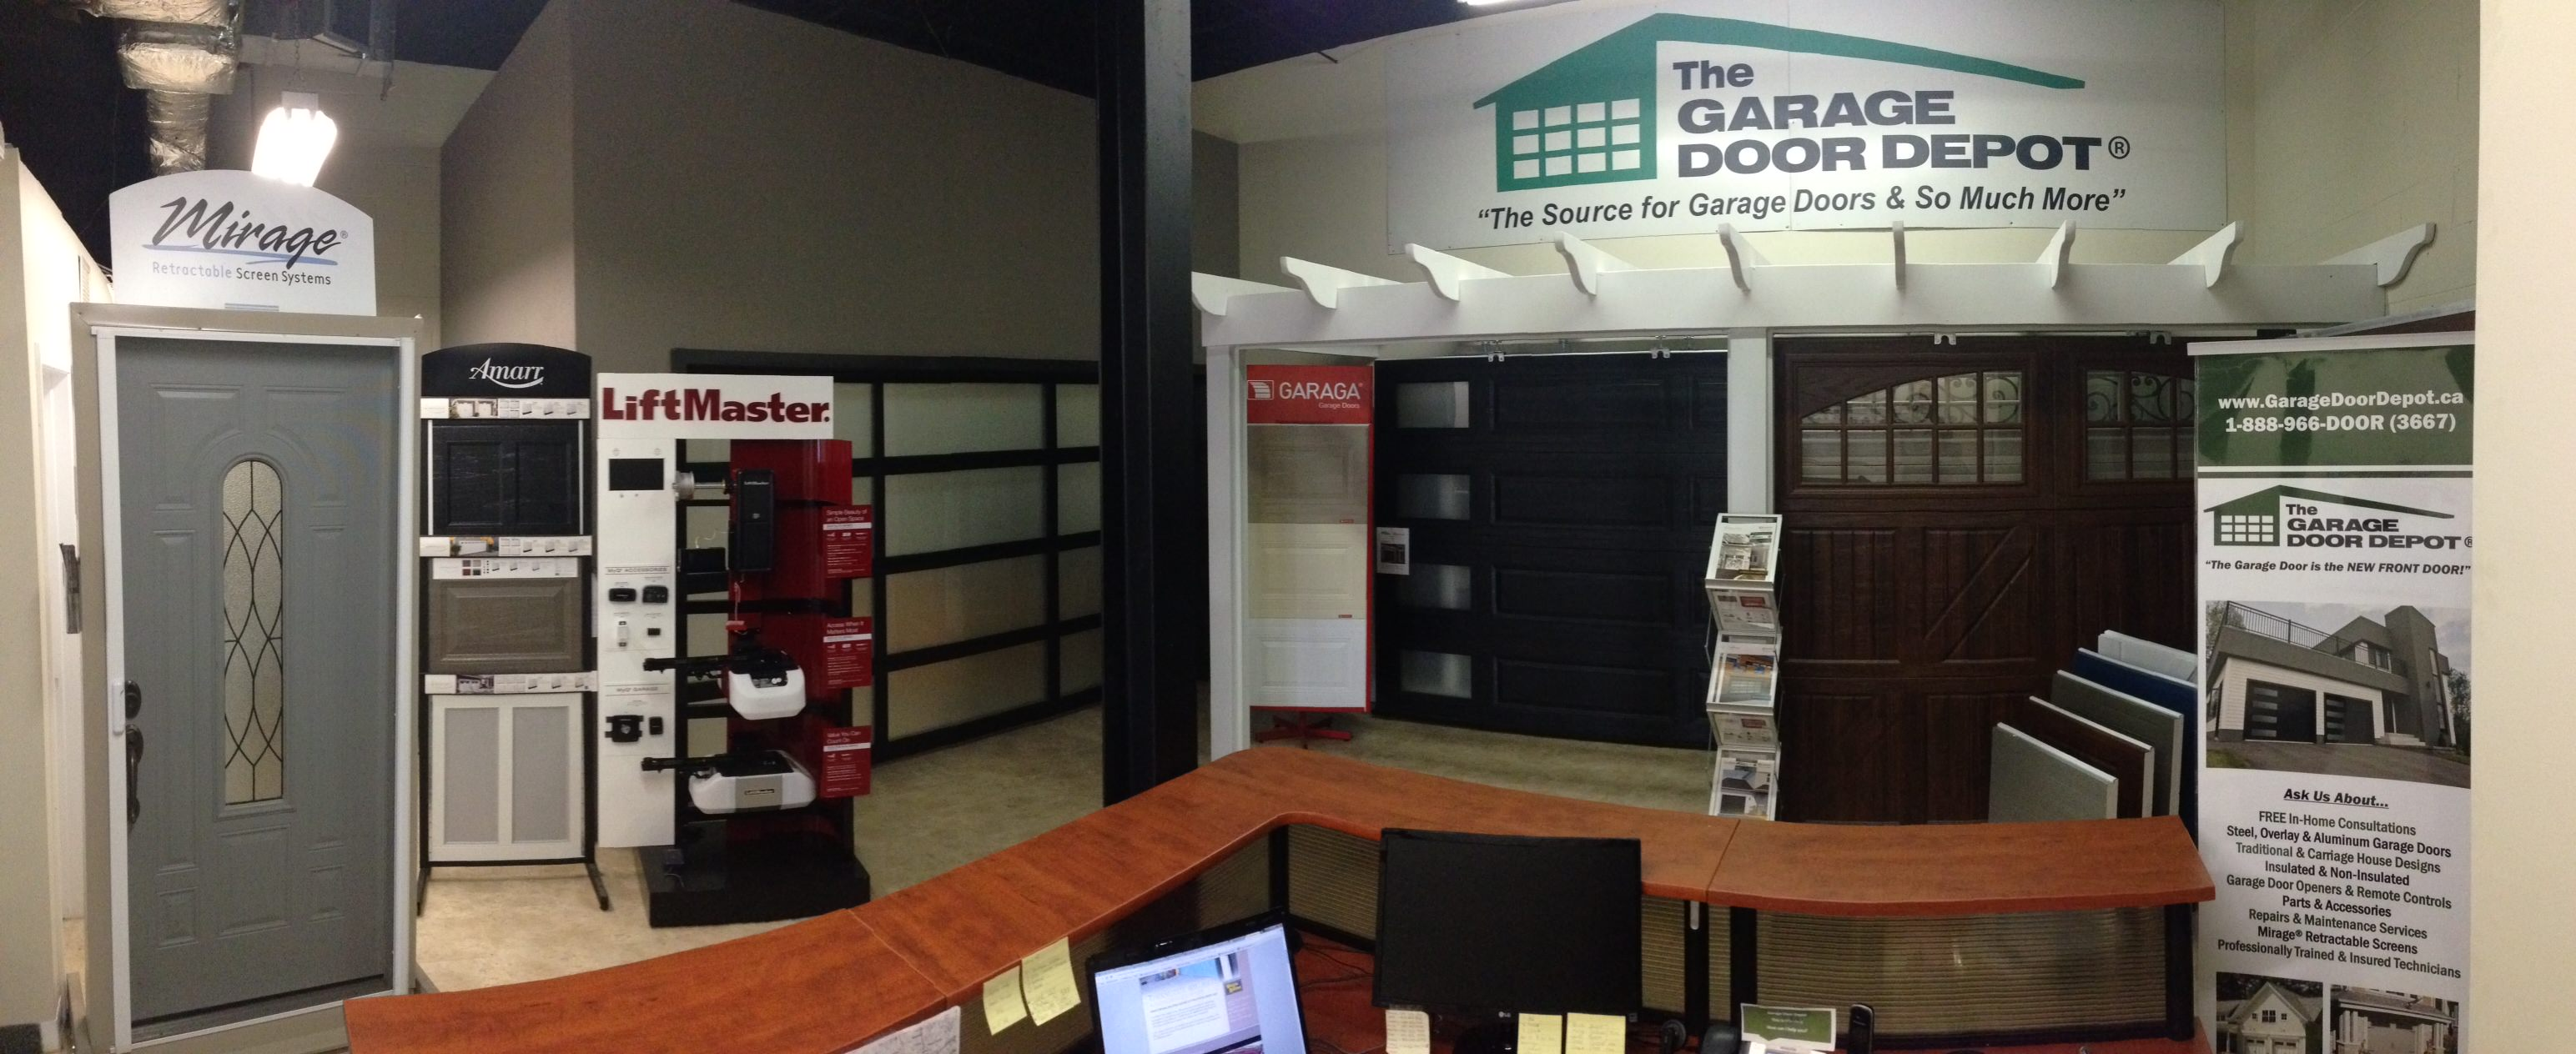 About Us | The Garage Door Depot - Scarborough on signs and more, kitchen cabinets and more, painting and more, air conditioning and more, blinds and more,